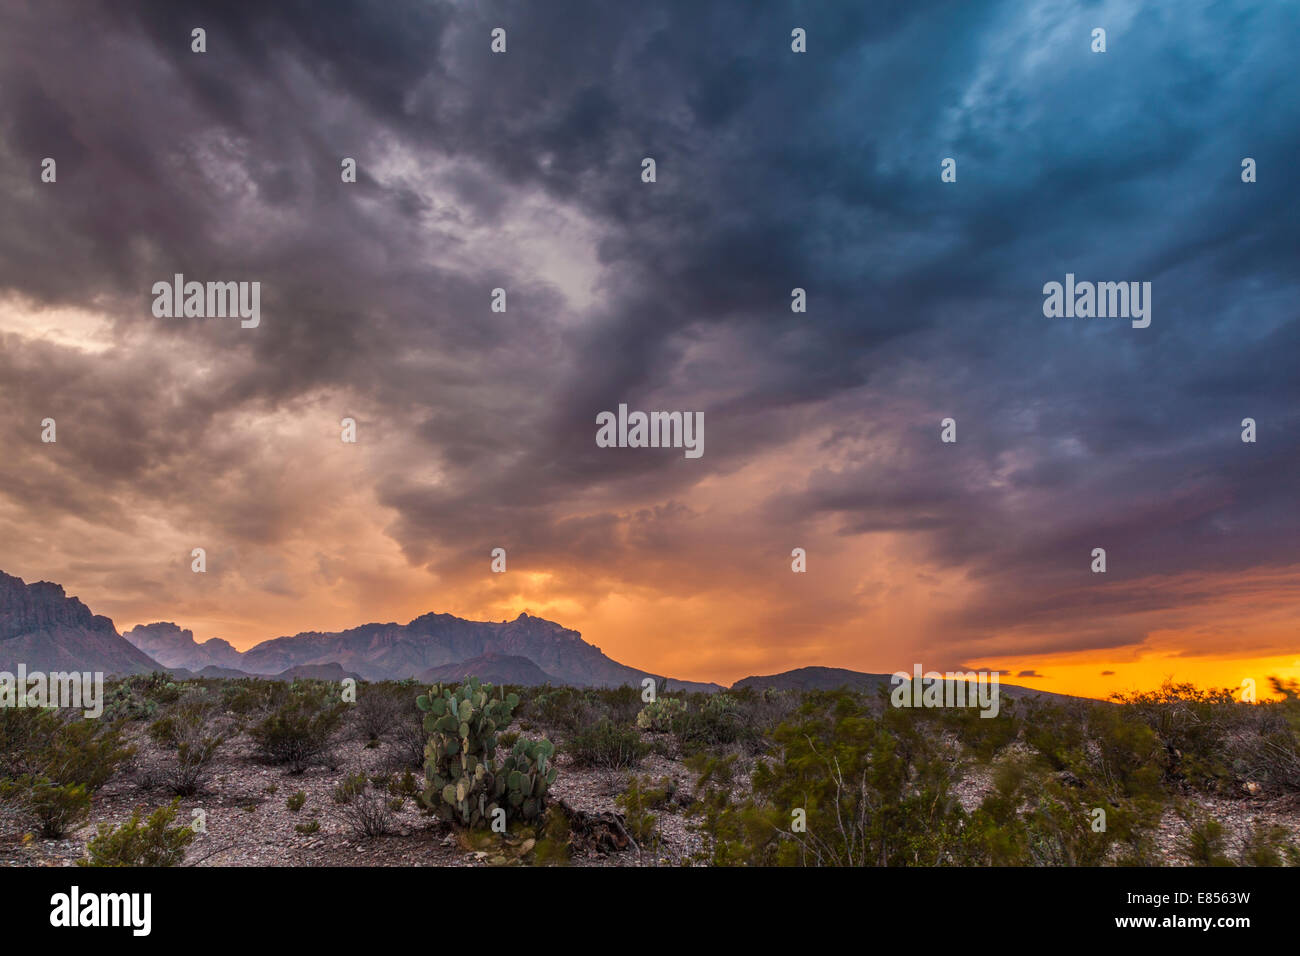 Thuderstorm clouds over Chisos Mountains in Big Bend National Park. Stock Photo